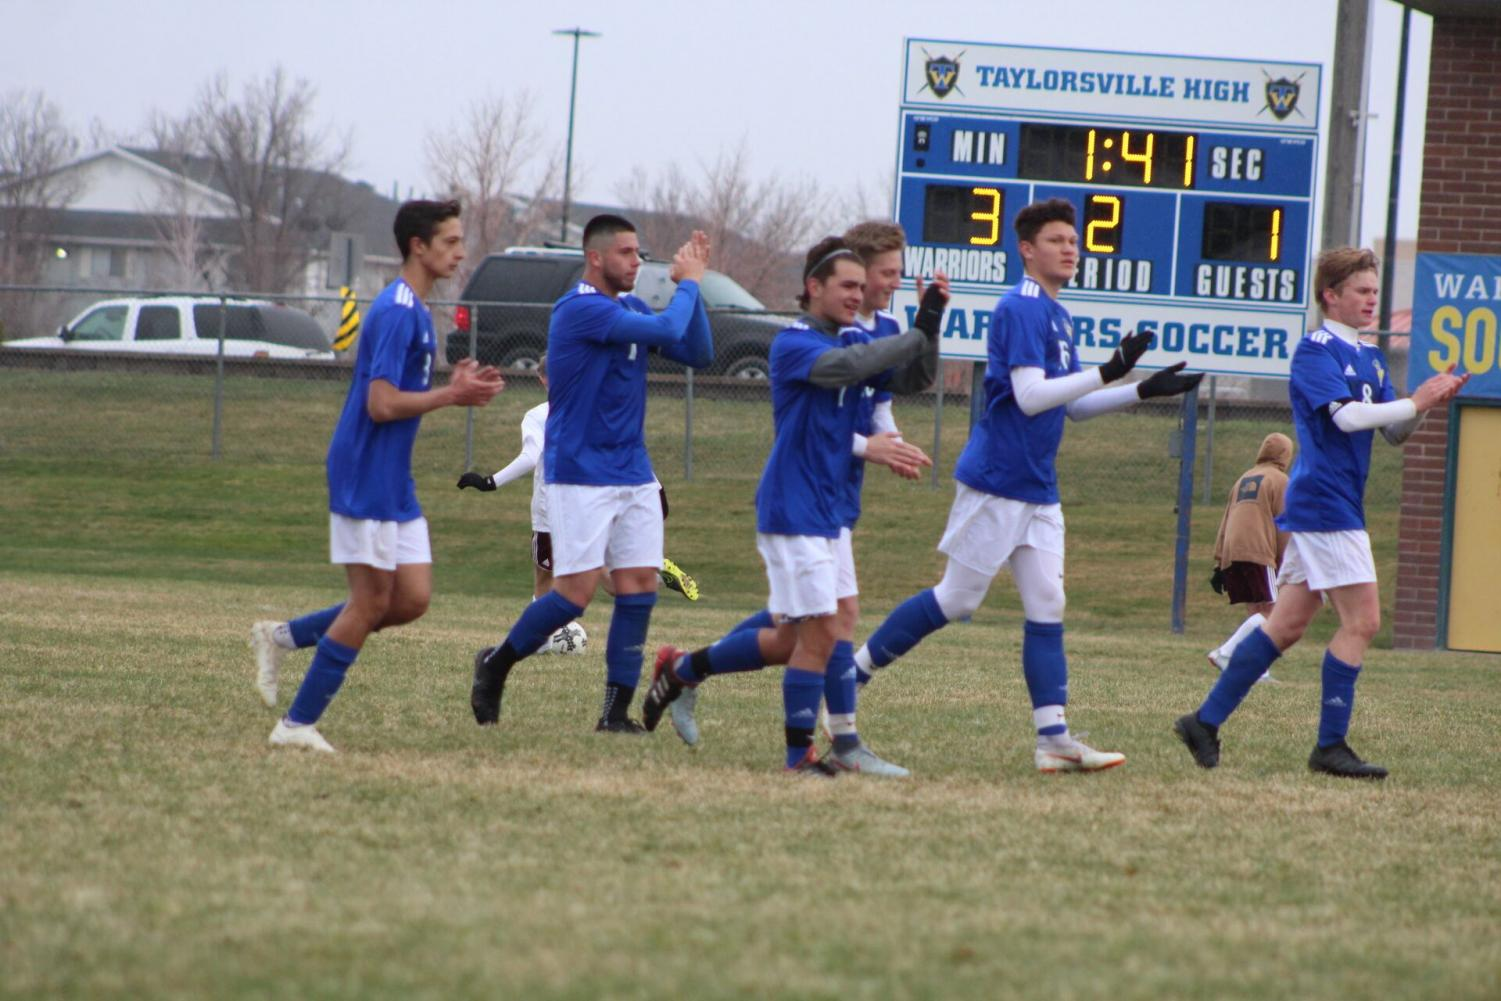 The Taylorsville Warrior, Boys Soccer Team cheering for their teammate at a home game.